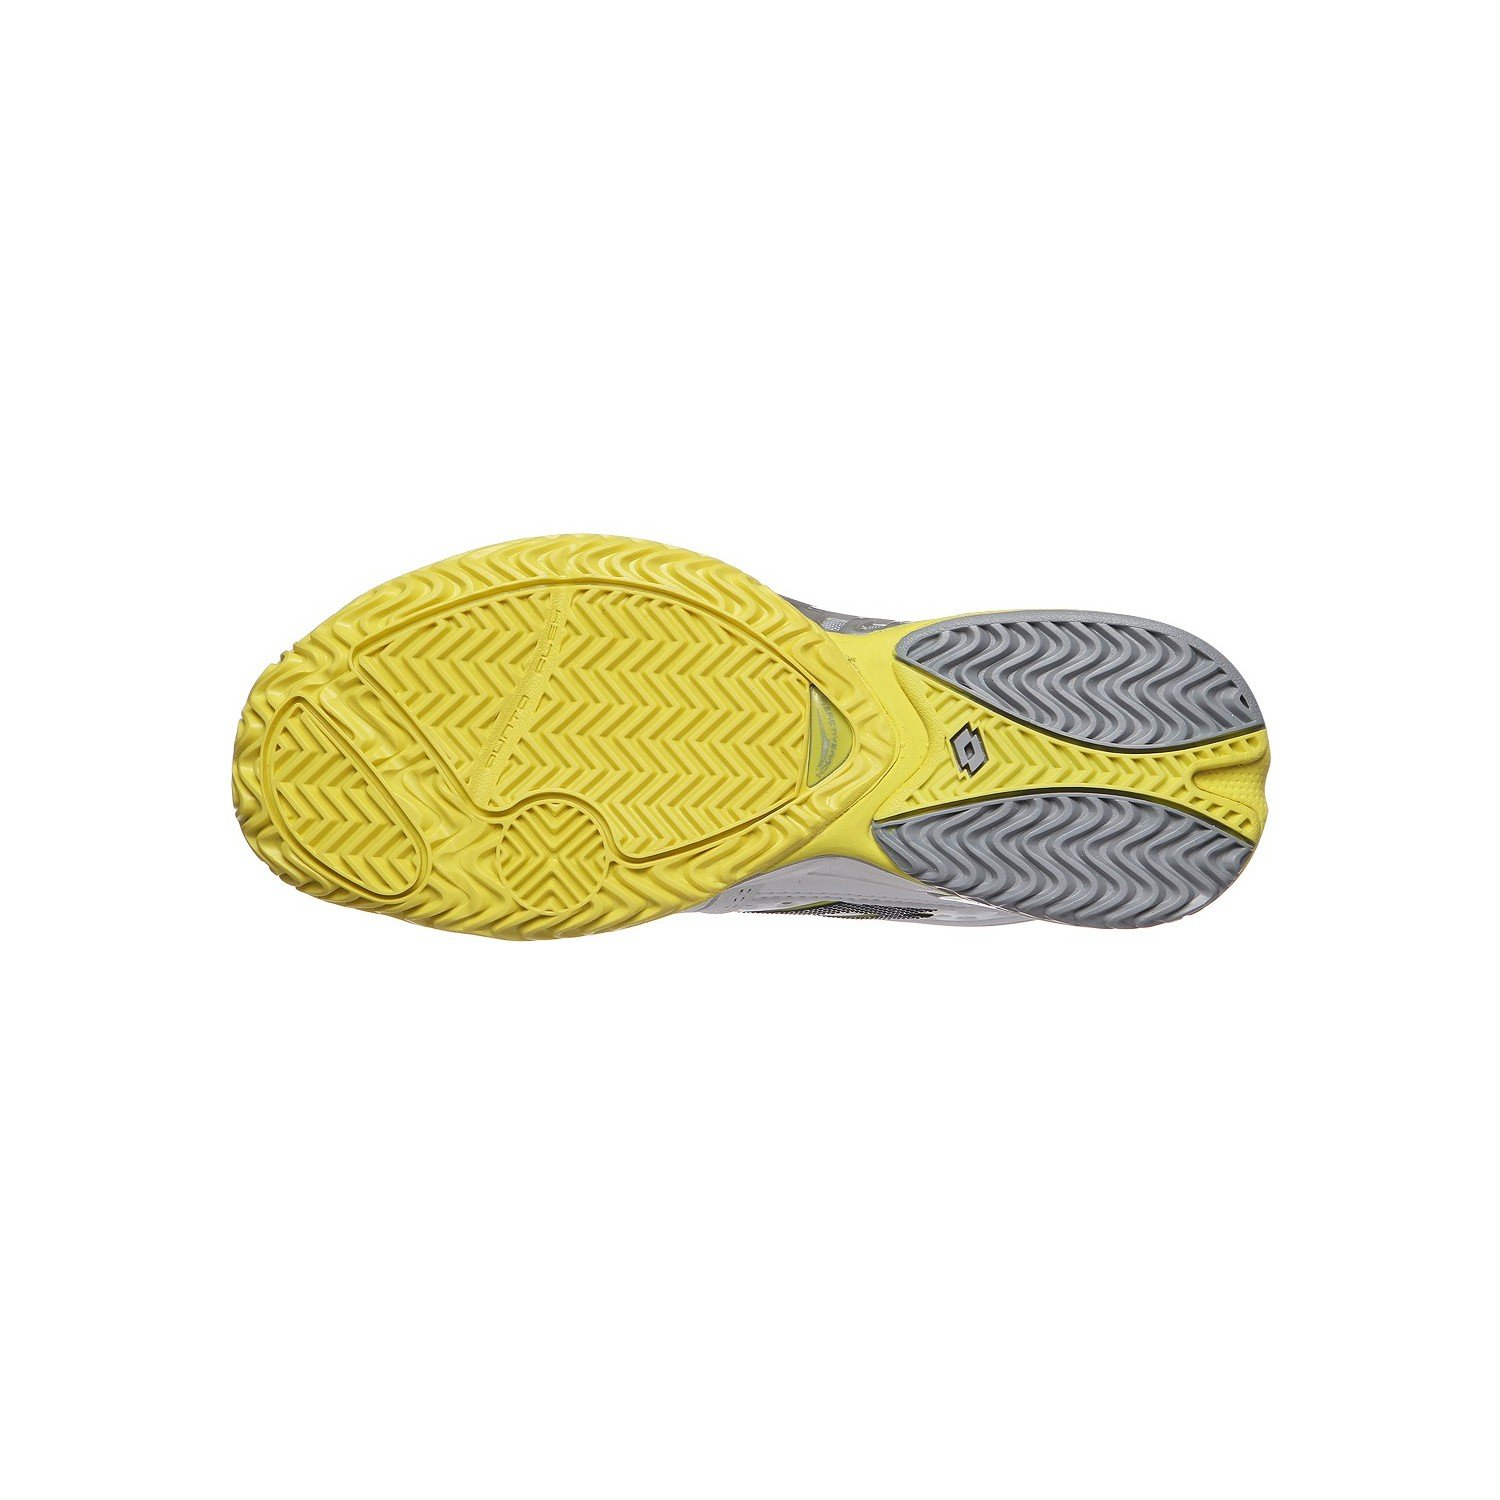 Chaussure Lotto Lotto Lotto Raptor IV Femme Clay - 36 5 d9b5e5